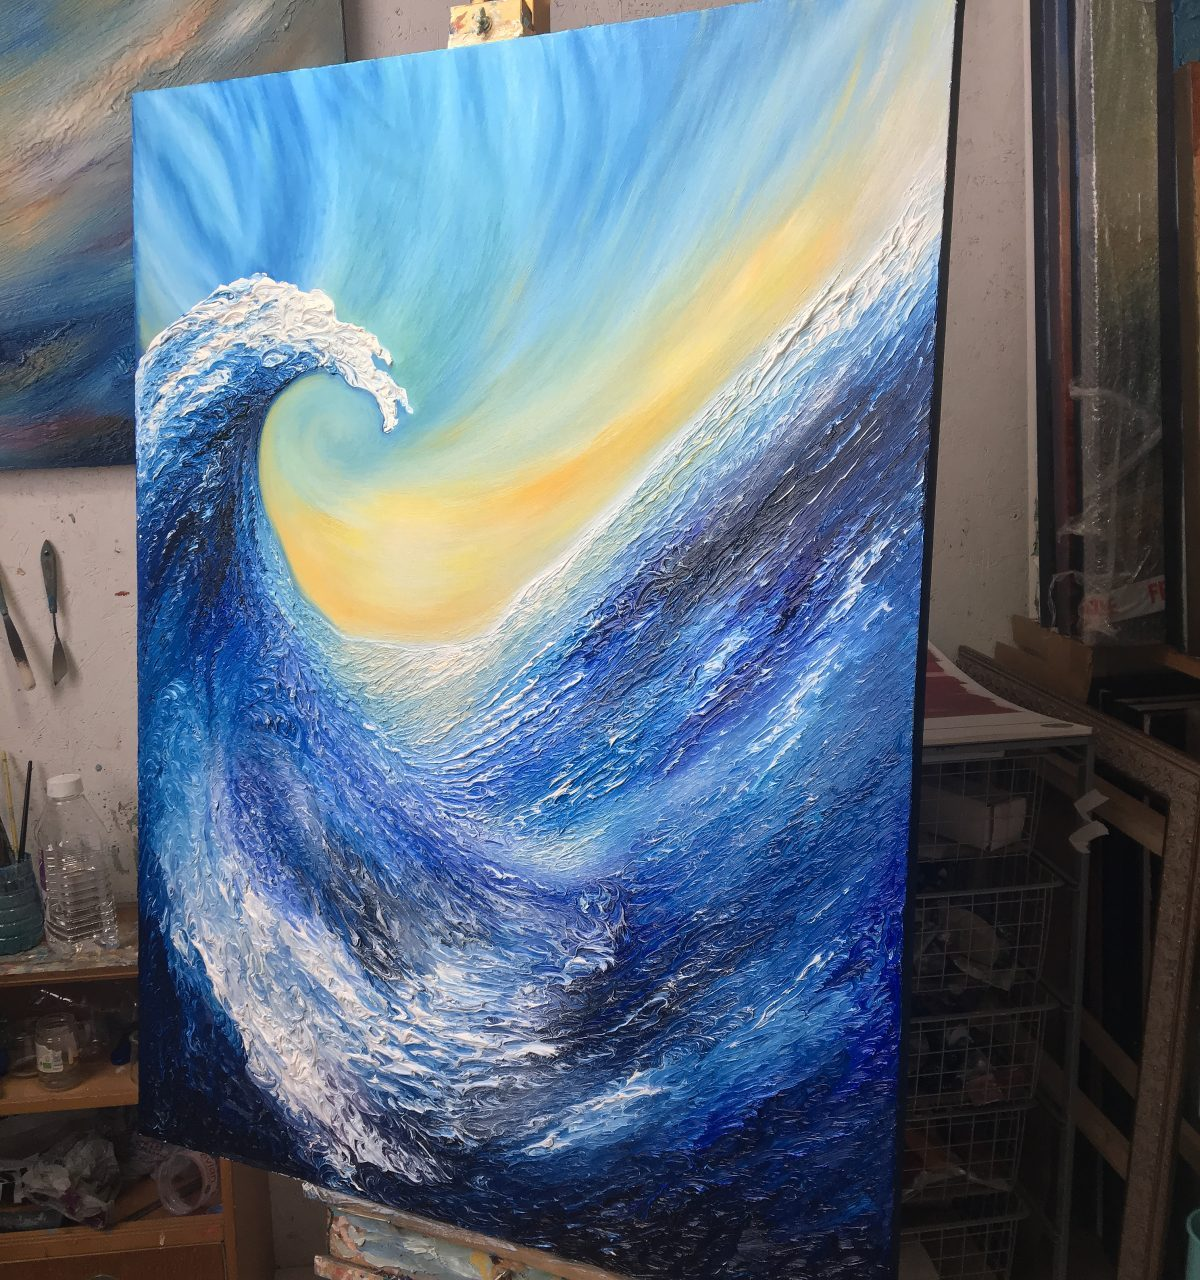 The Wave | Oil on canvas | 92 x 122 cm